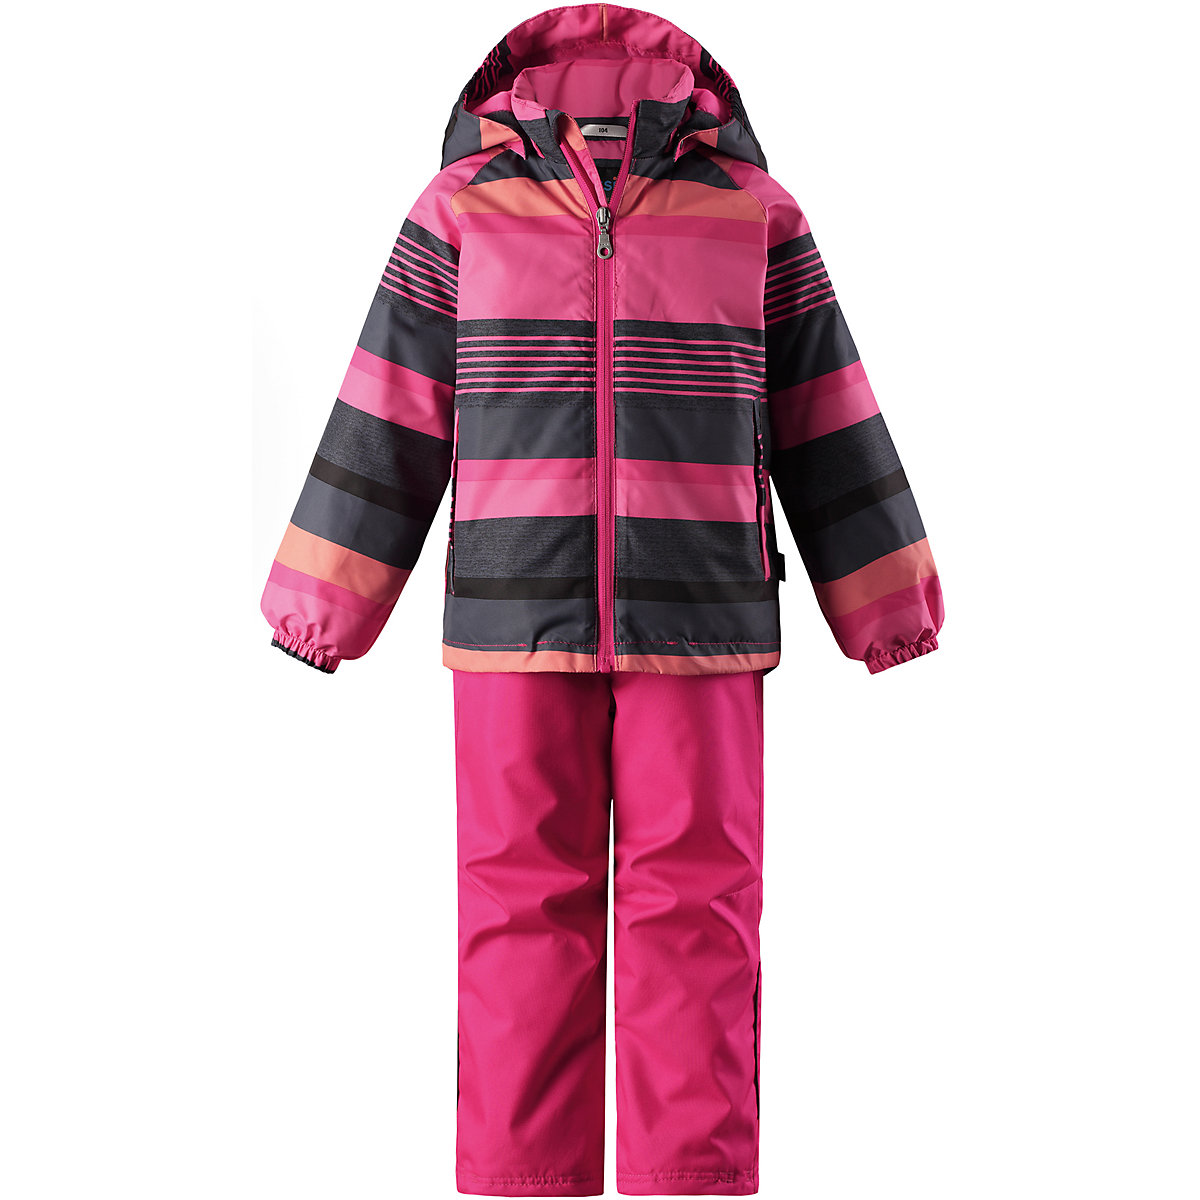 Children's Sets LASSIE for boys and girls 7797189 Winter Track Suit Kids Children clothes Warm 2017 gsou snow women ski jacket pant outdoor sport wear skiing snowboard super warm suit cycling windproof waterproof suit set